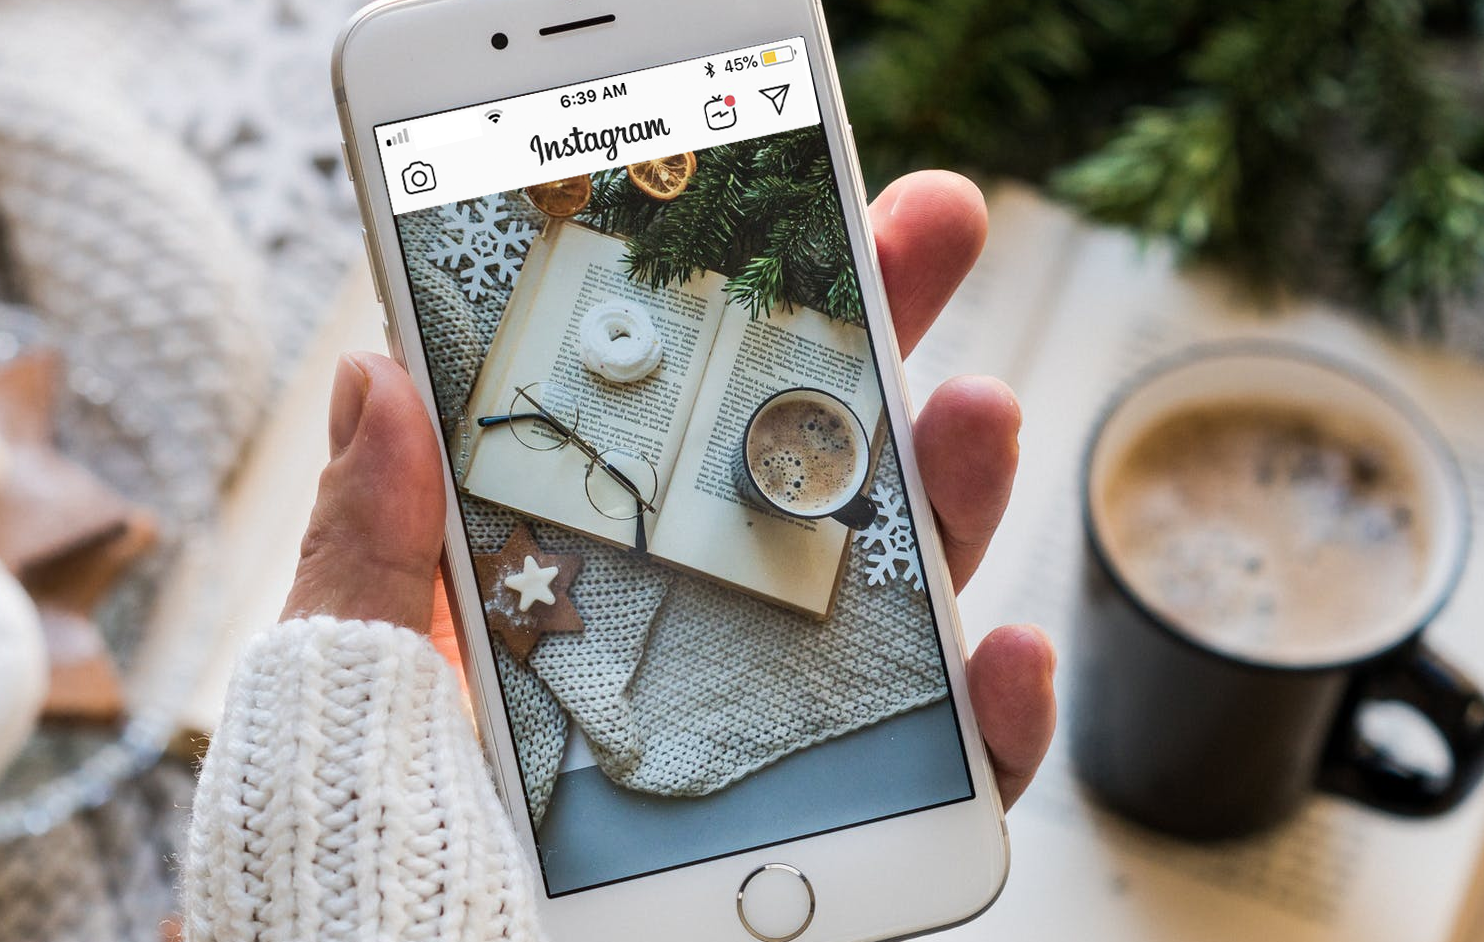 eye-catching content - Not sure how to put your product pictures or graphics to work? Rely on our team to share visually appealing content that will stop the scroll and pique interest.